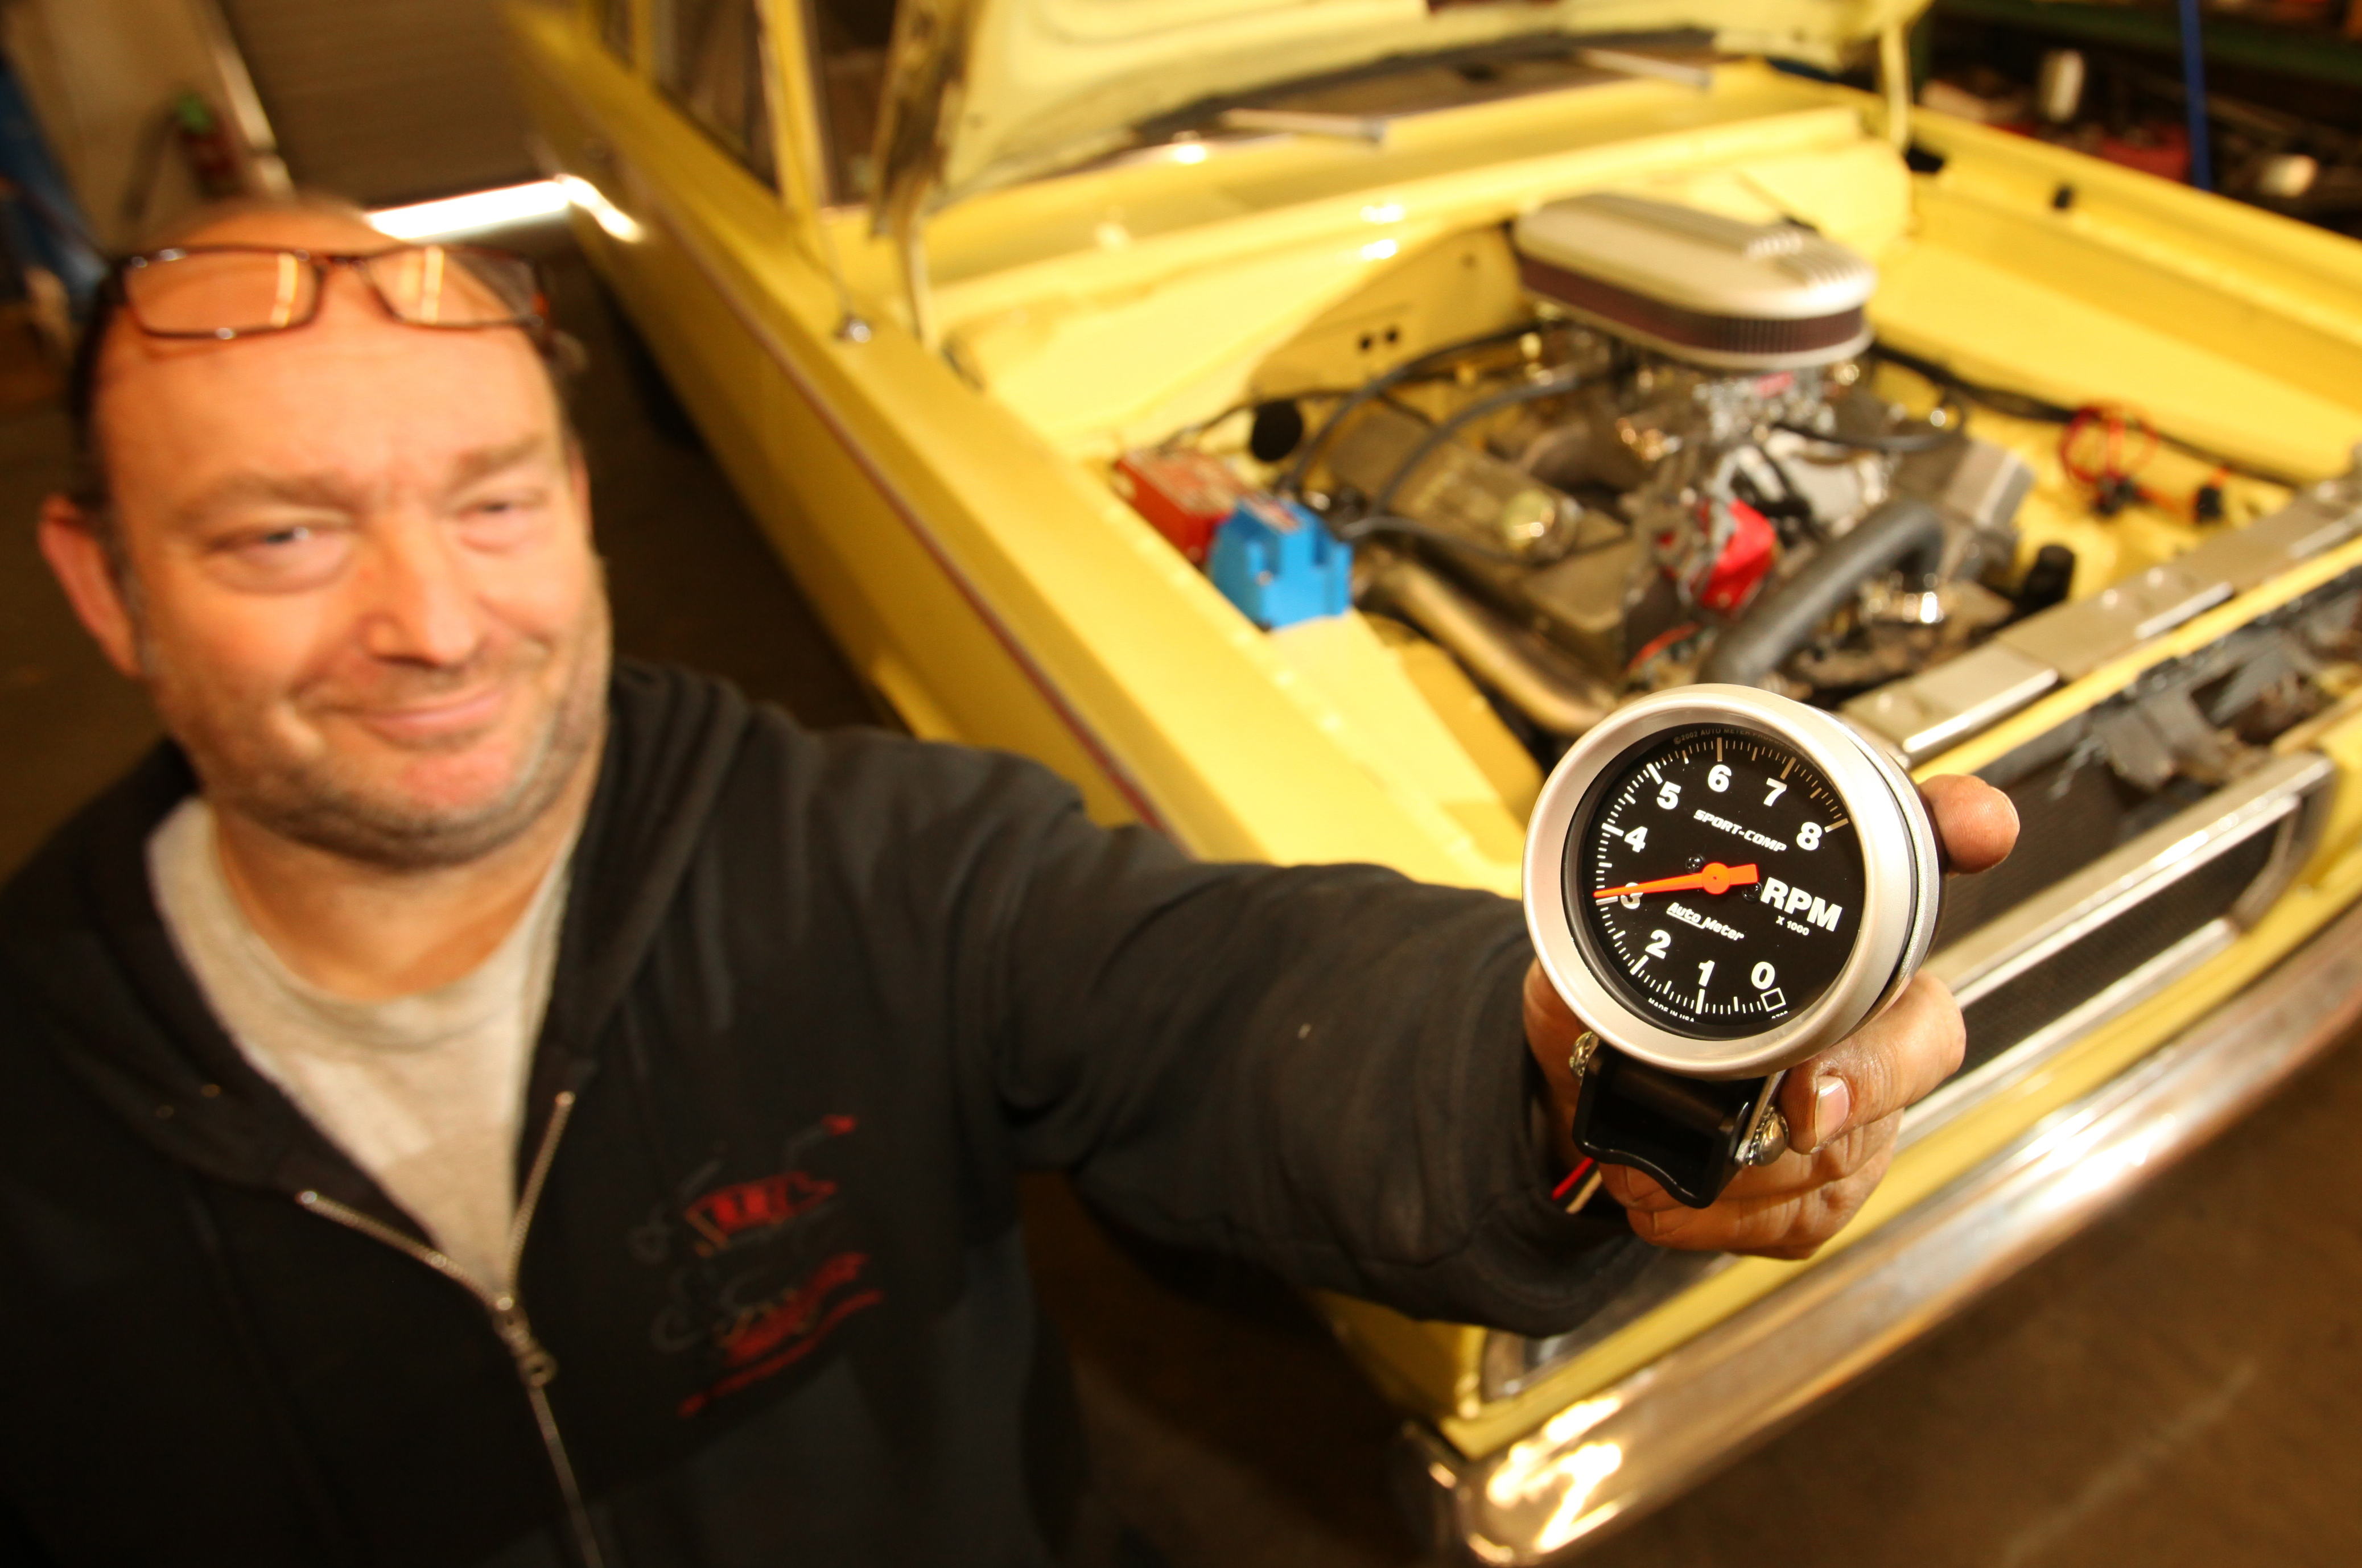 Auto Meter Tachometer Tach It On Hot Rod Network To Msd 6al Box Wiring Bill Richman Of Rrc Fabrication Speed In Upland California Holds Up Meters